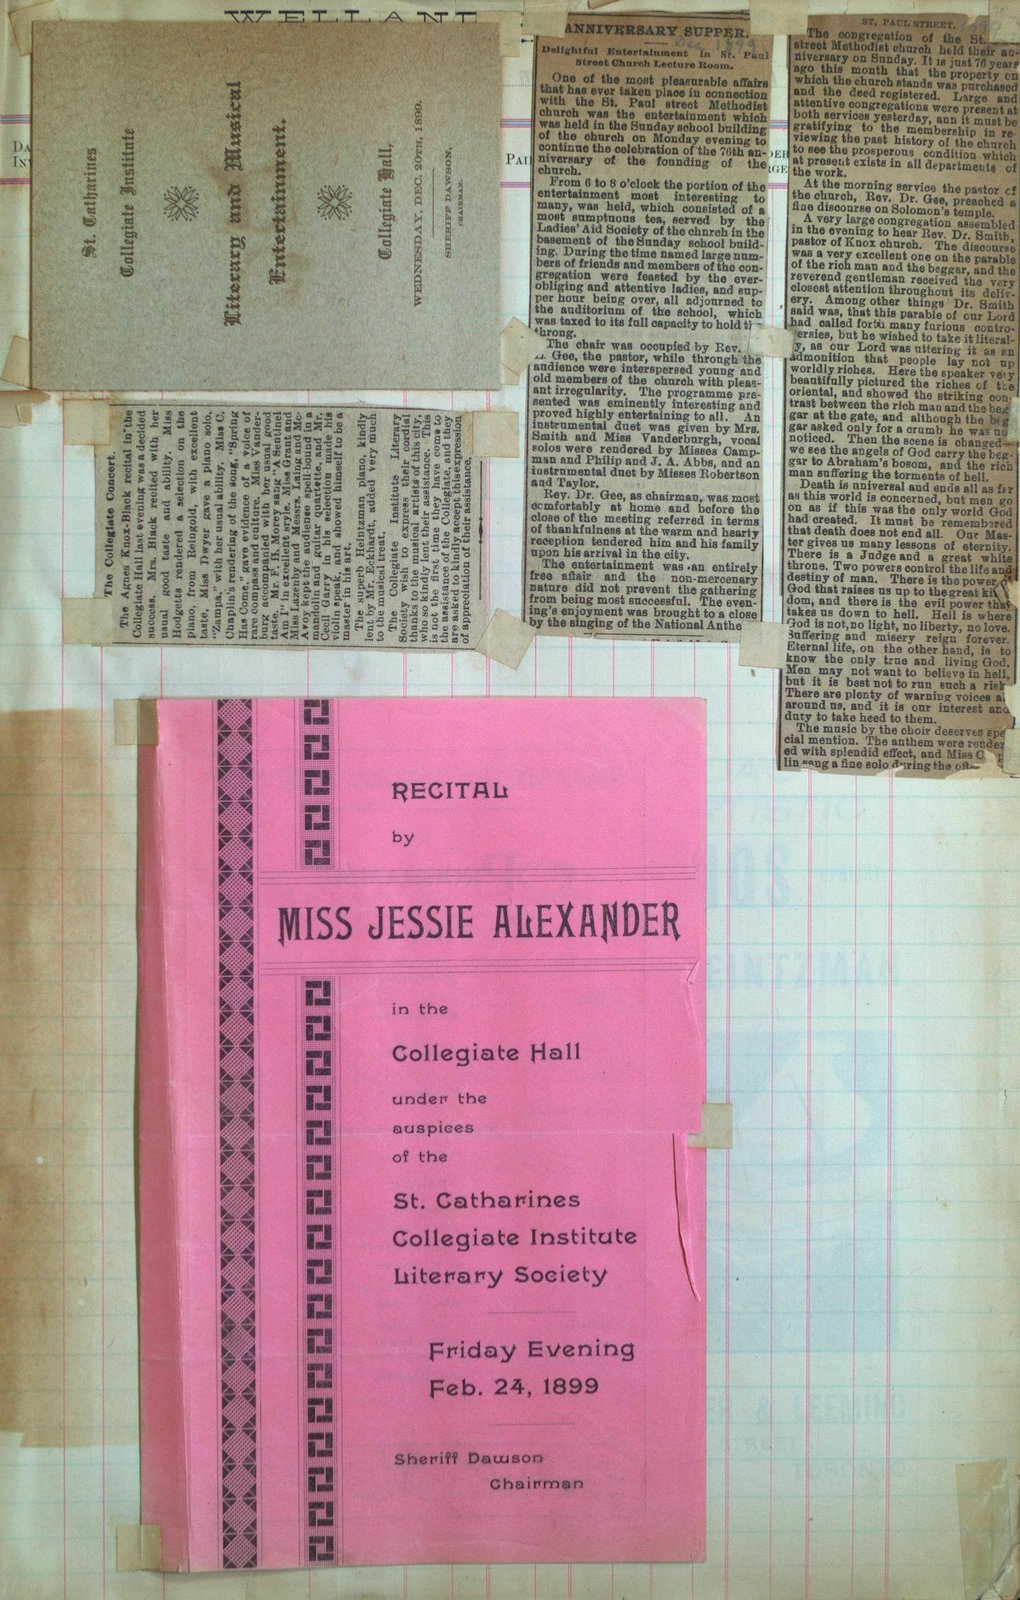 Teresa Vanderburgh's Musical Scrapbook #2 - Musical Programs and Newspaper Reviews